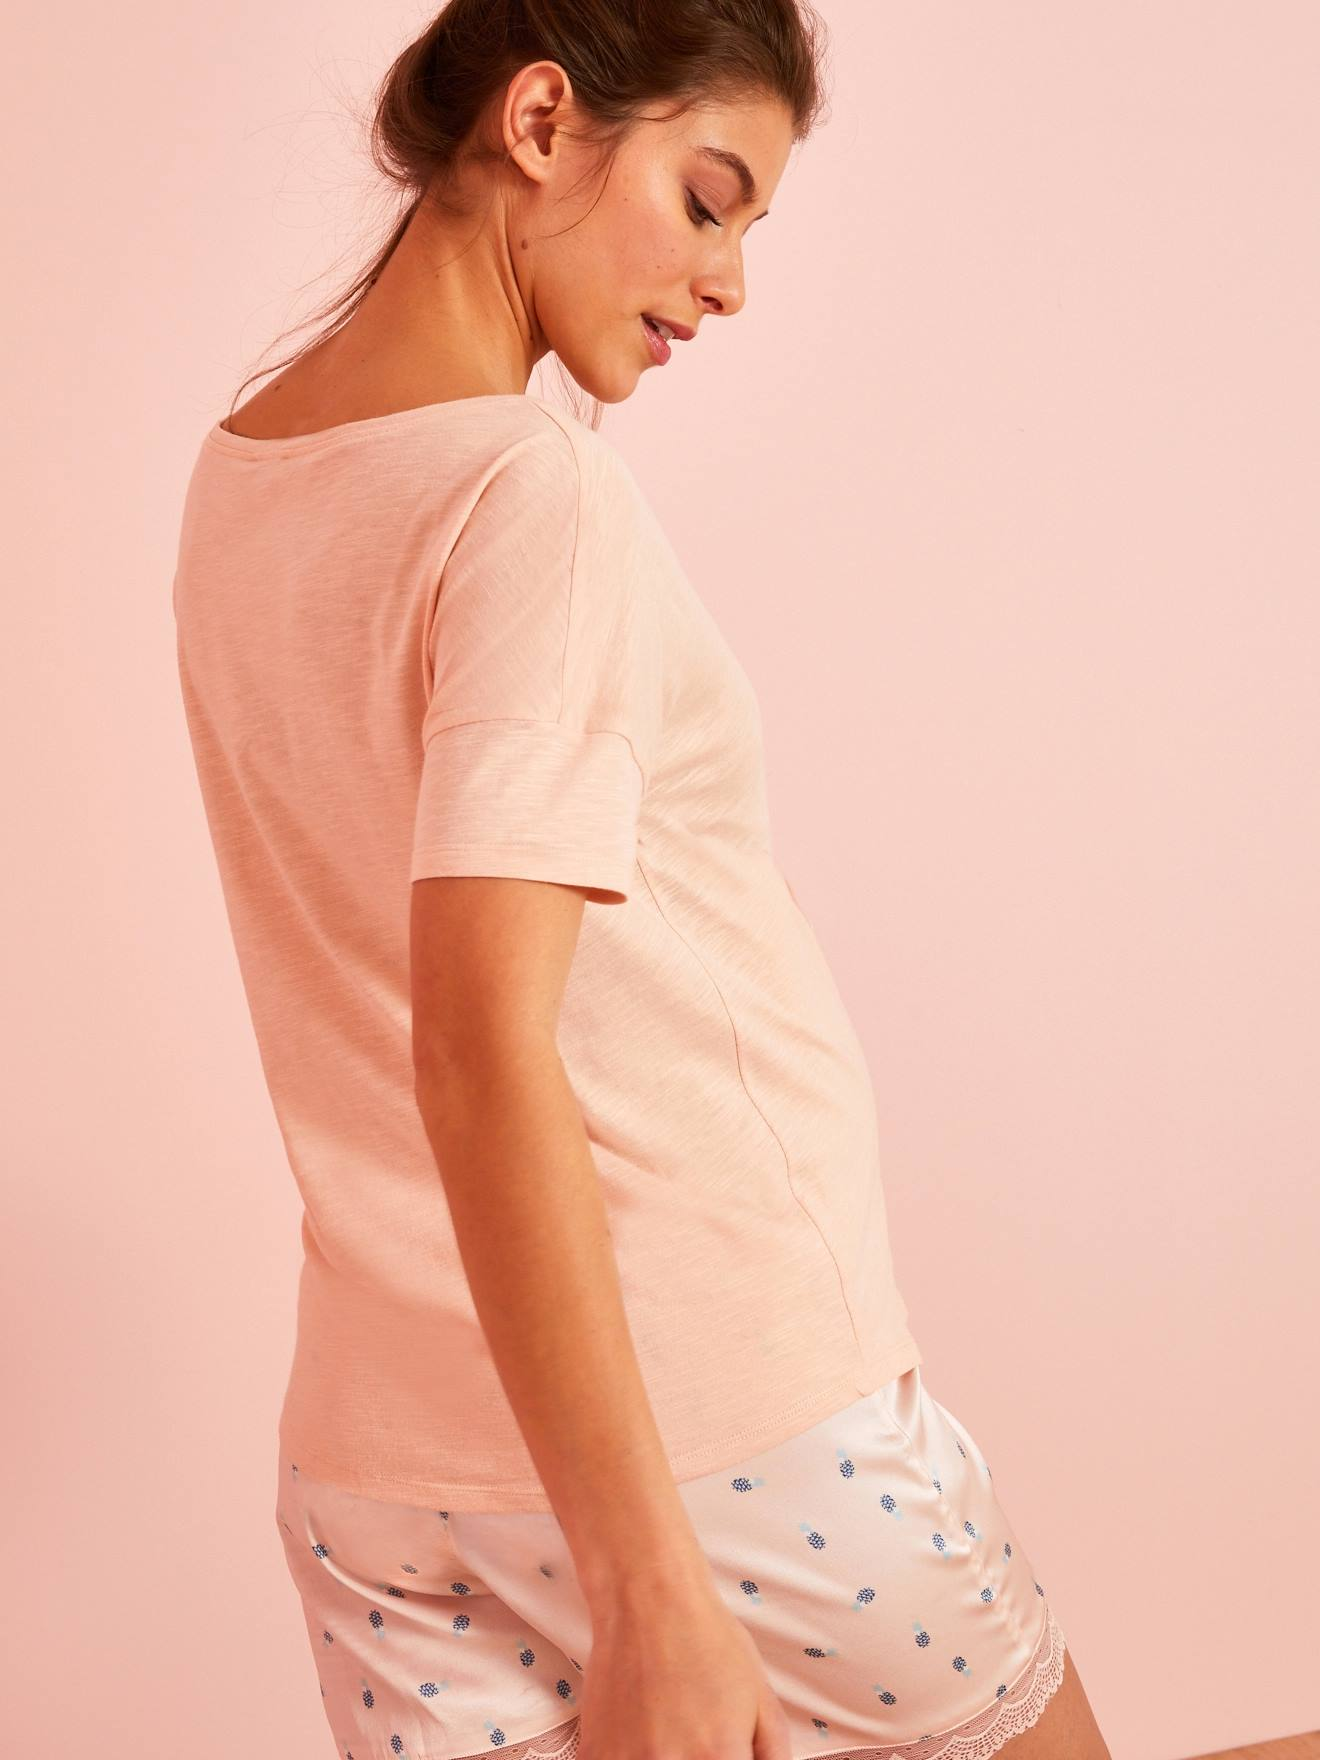 51693cd7aacd3 Maternity T-Shirt in Marl Jersey Knit Fabric - pink light solid with design,  Maternity | Vertbaudet